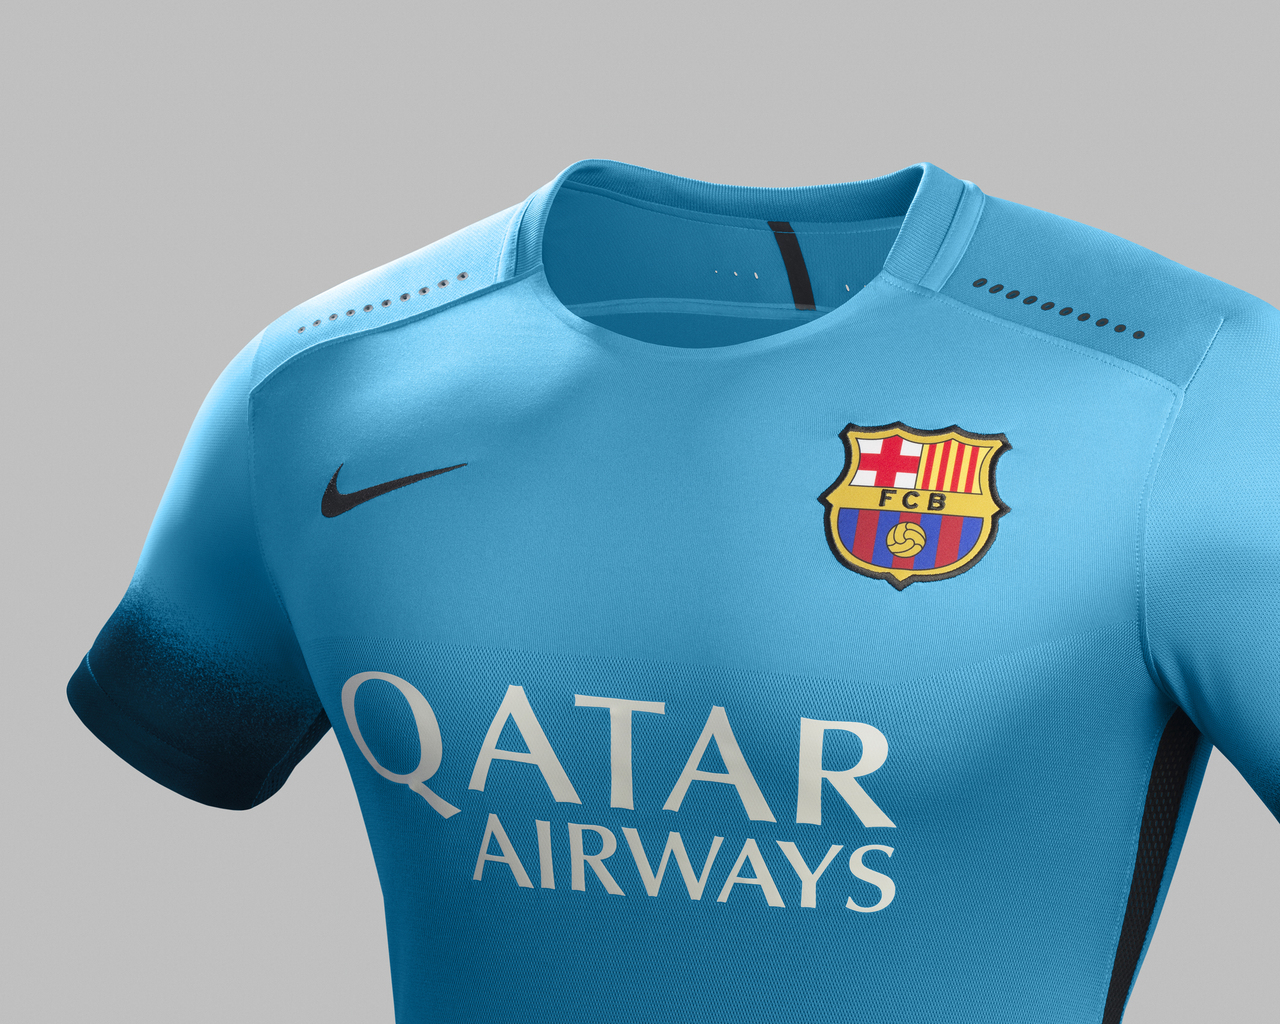 http://www.footballshirtculture.com/images/stories/barcelona-2015-2016-nike-third-football-shirt/barcelona-2015-2016-nike-third-football-shirt-c.jpg